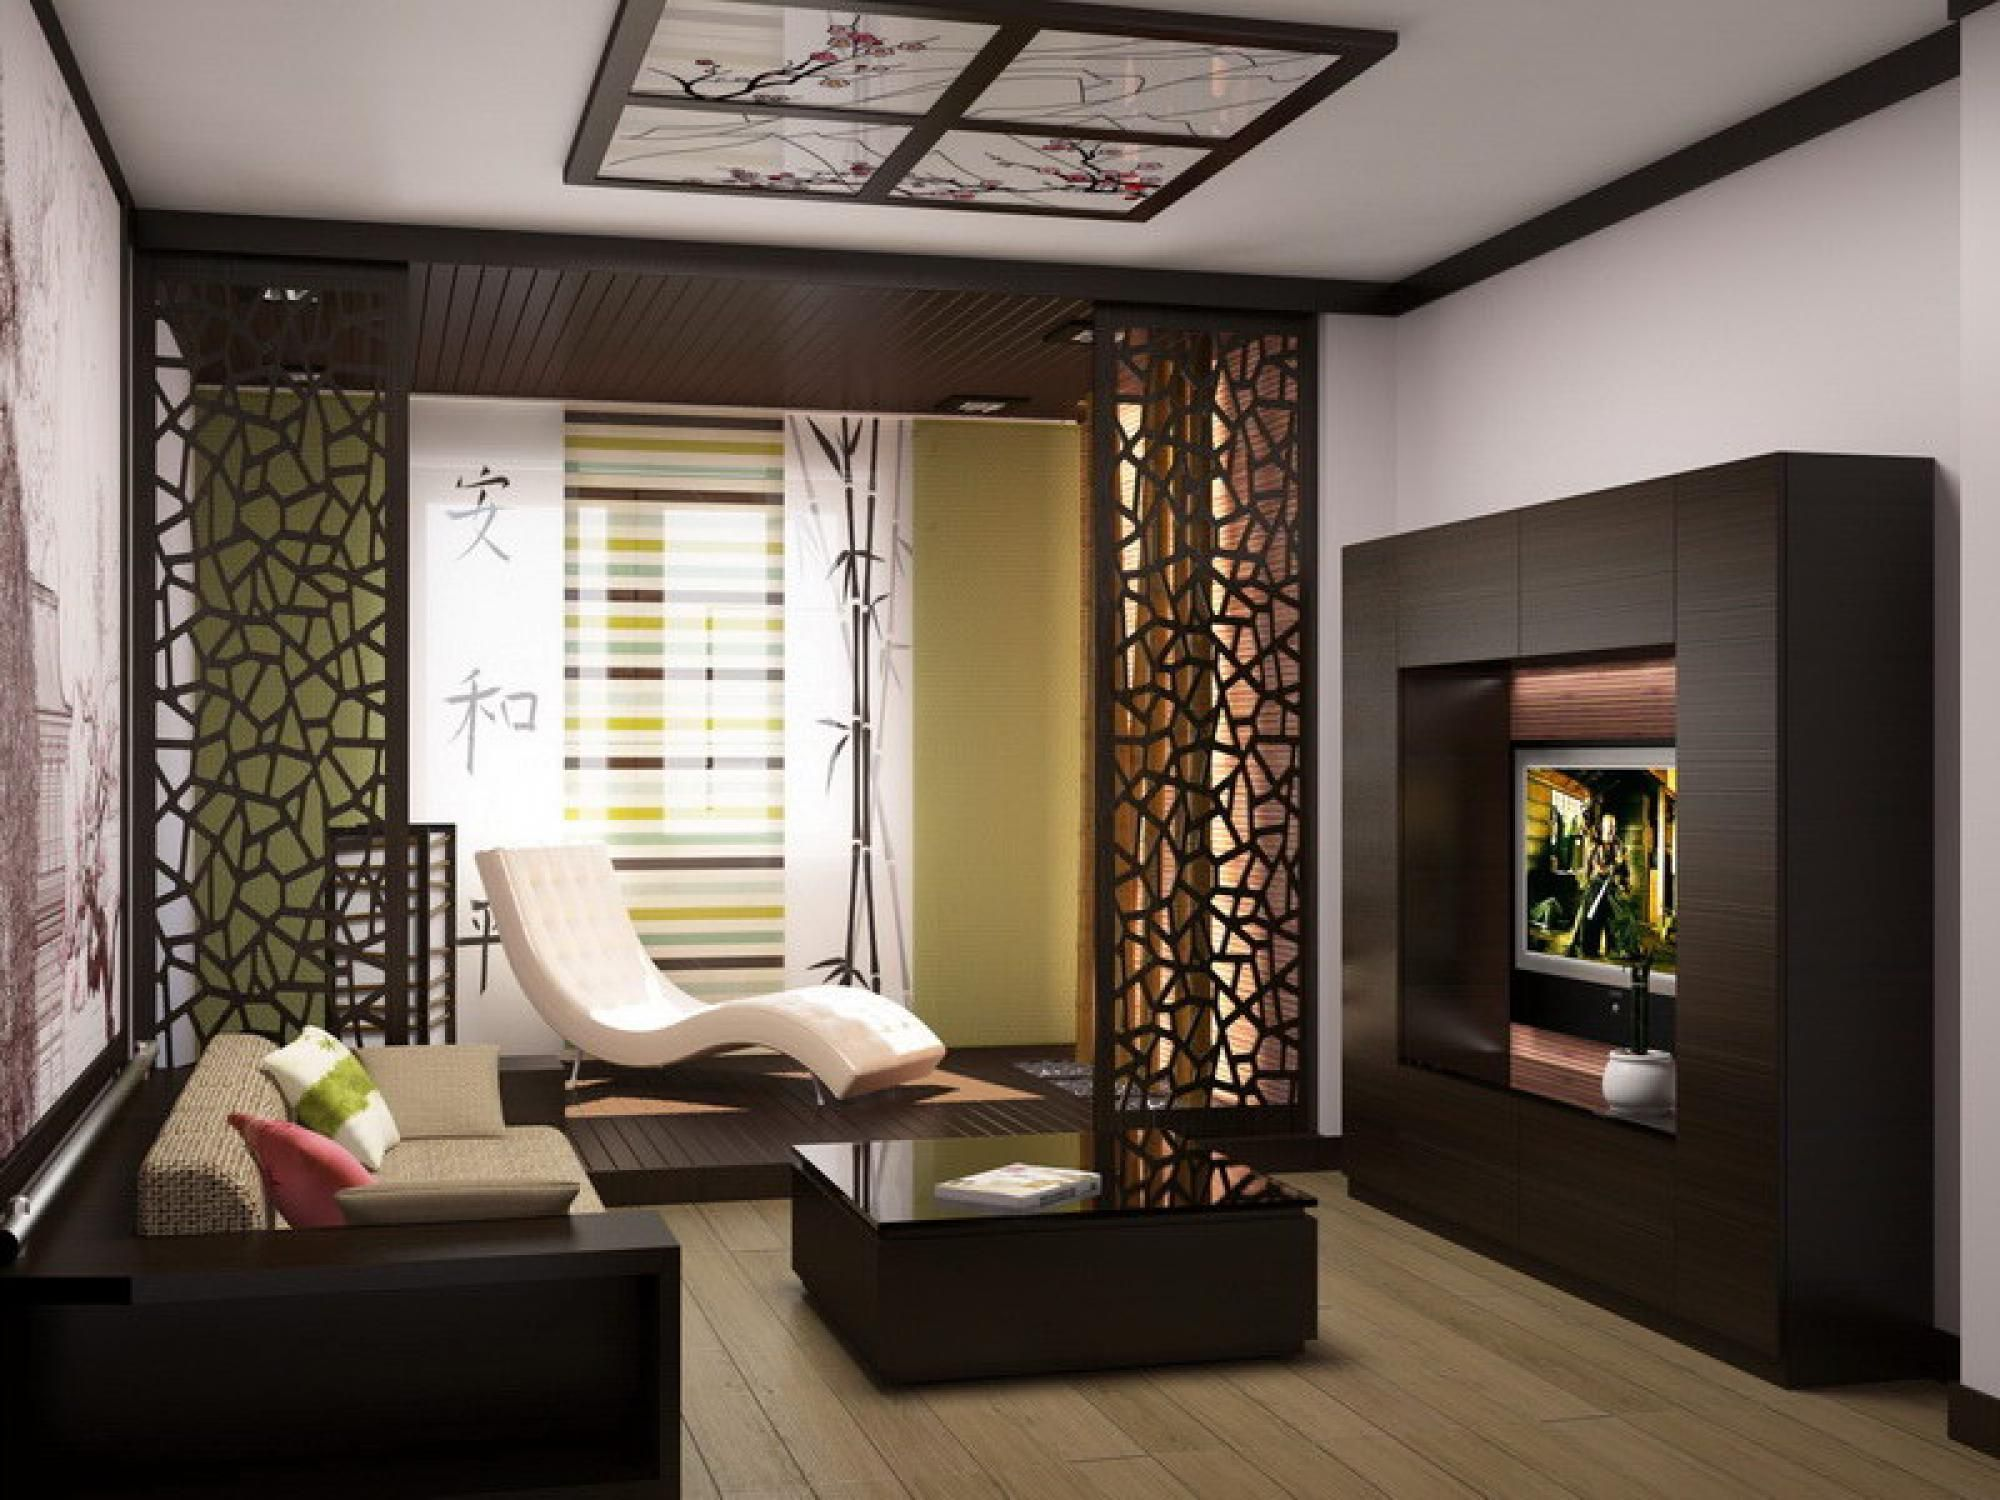 Wall Partition Ideas Most Modern Walls Brilliant Living Room Style Surripui Intended Room Partition Designs Living Room Partition Design Living Room Partition